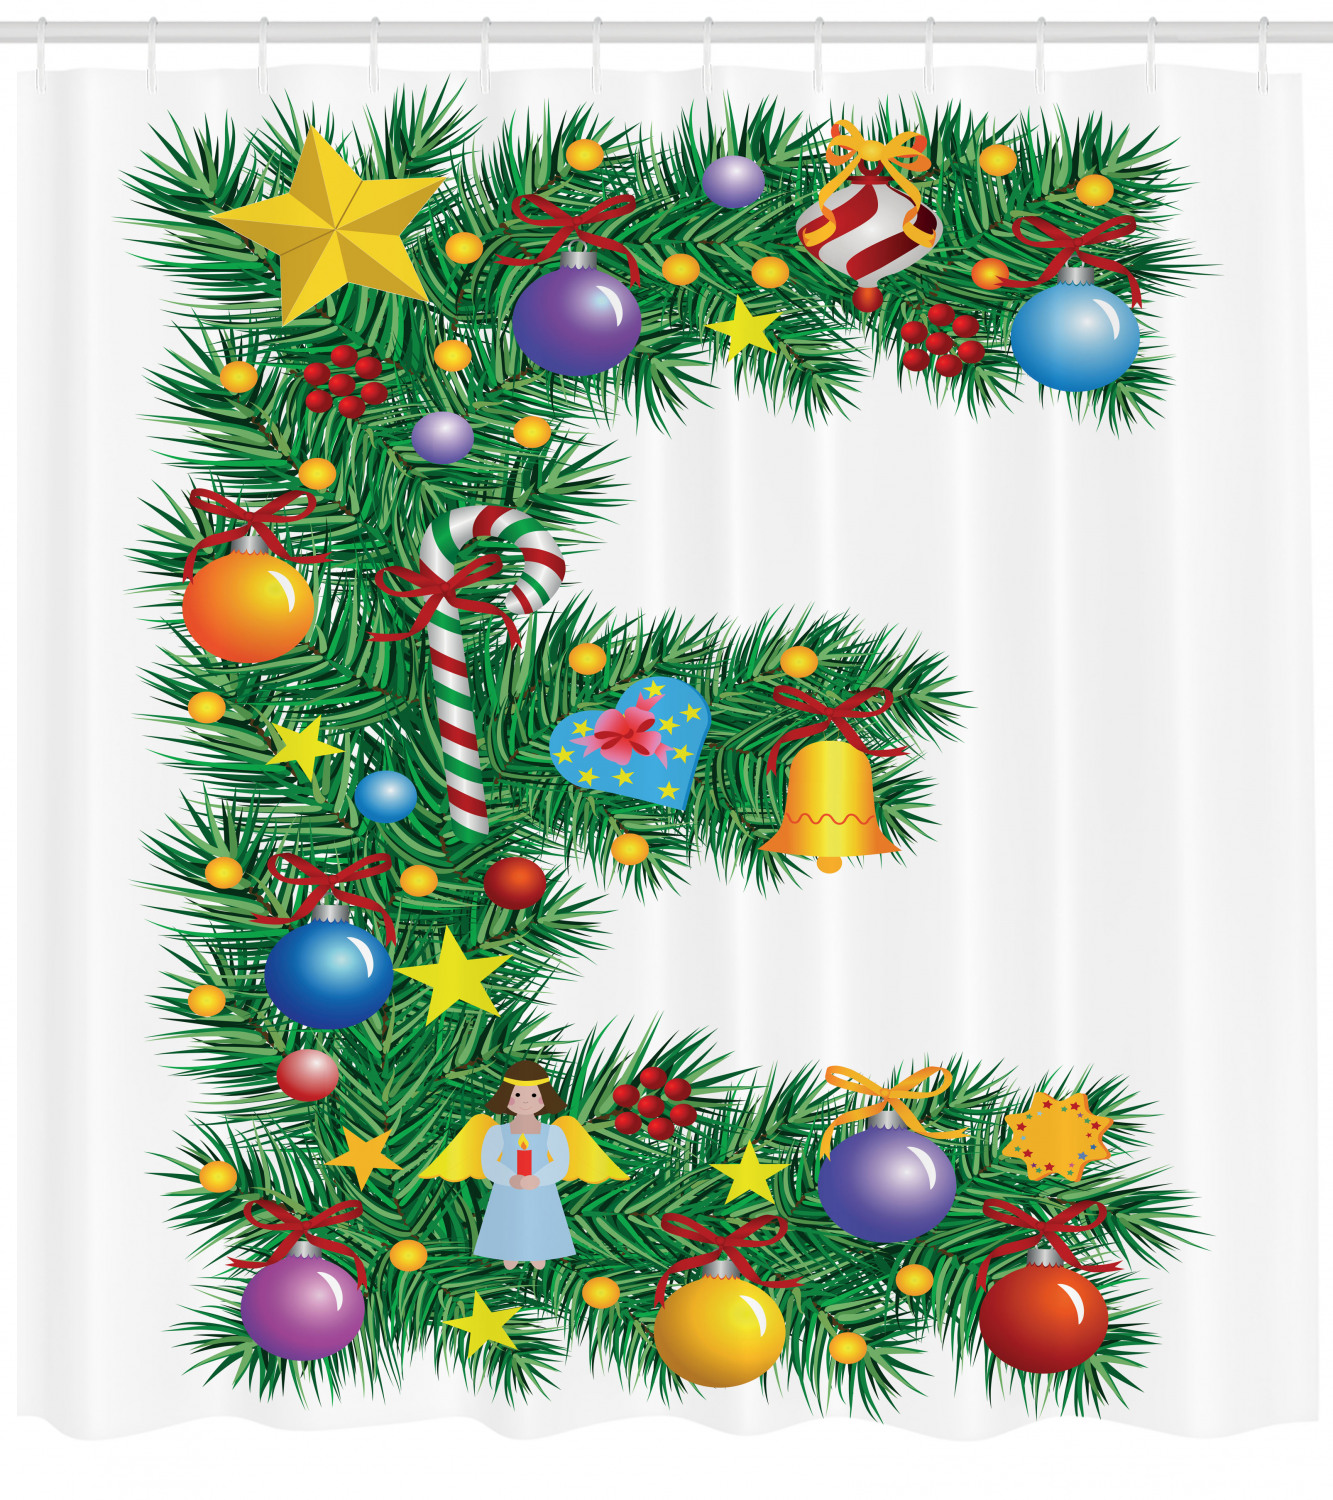 Letter E Shower Curtain Seasonal Holiday Candy Cane Big Star Praying Angel Capitalized Letter E Alphabet Fabric Bathroom Set With Hooks 69w X 84l